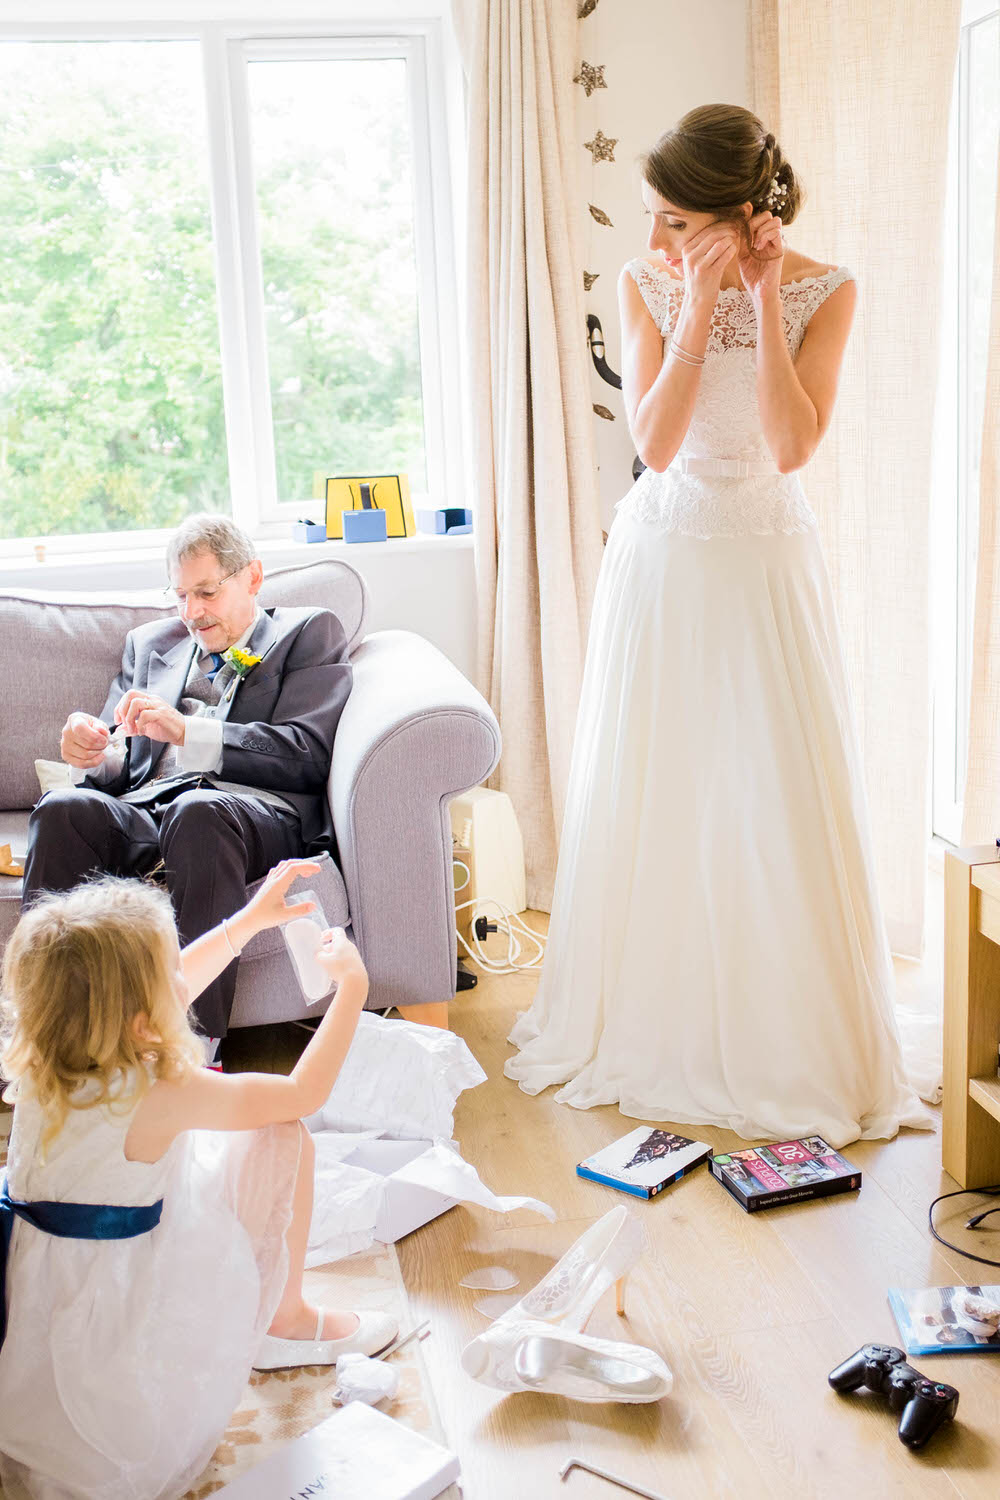 A-bride-prepares-for-a-wedding-in-Cheltenham.jpg